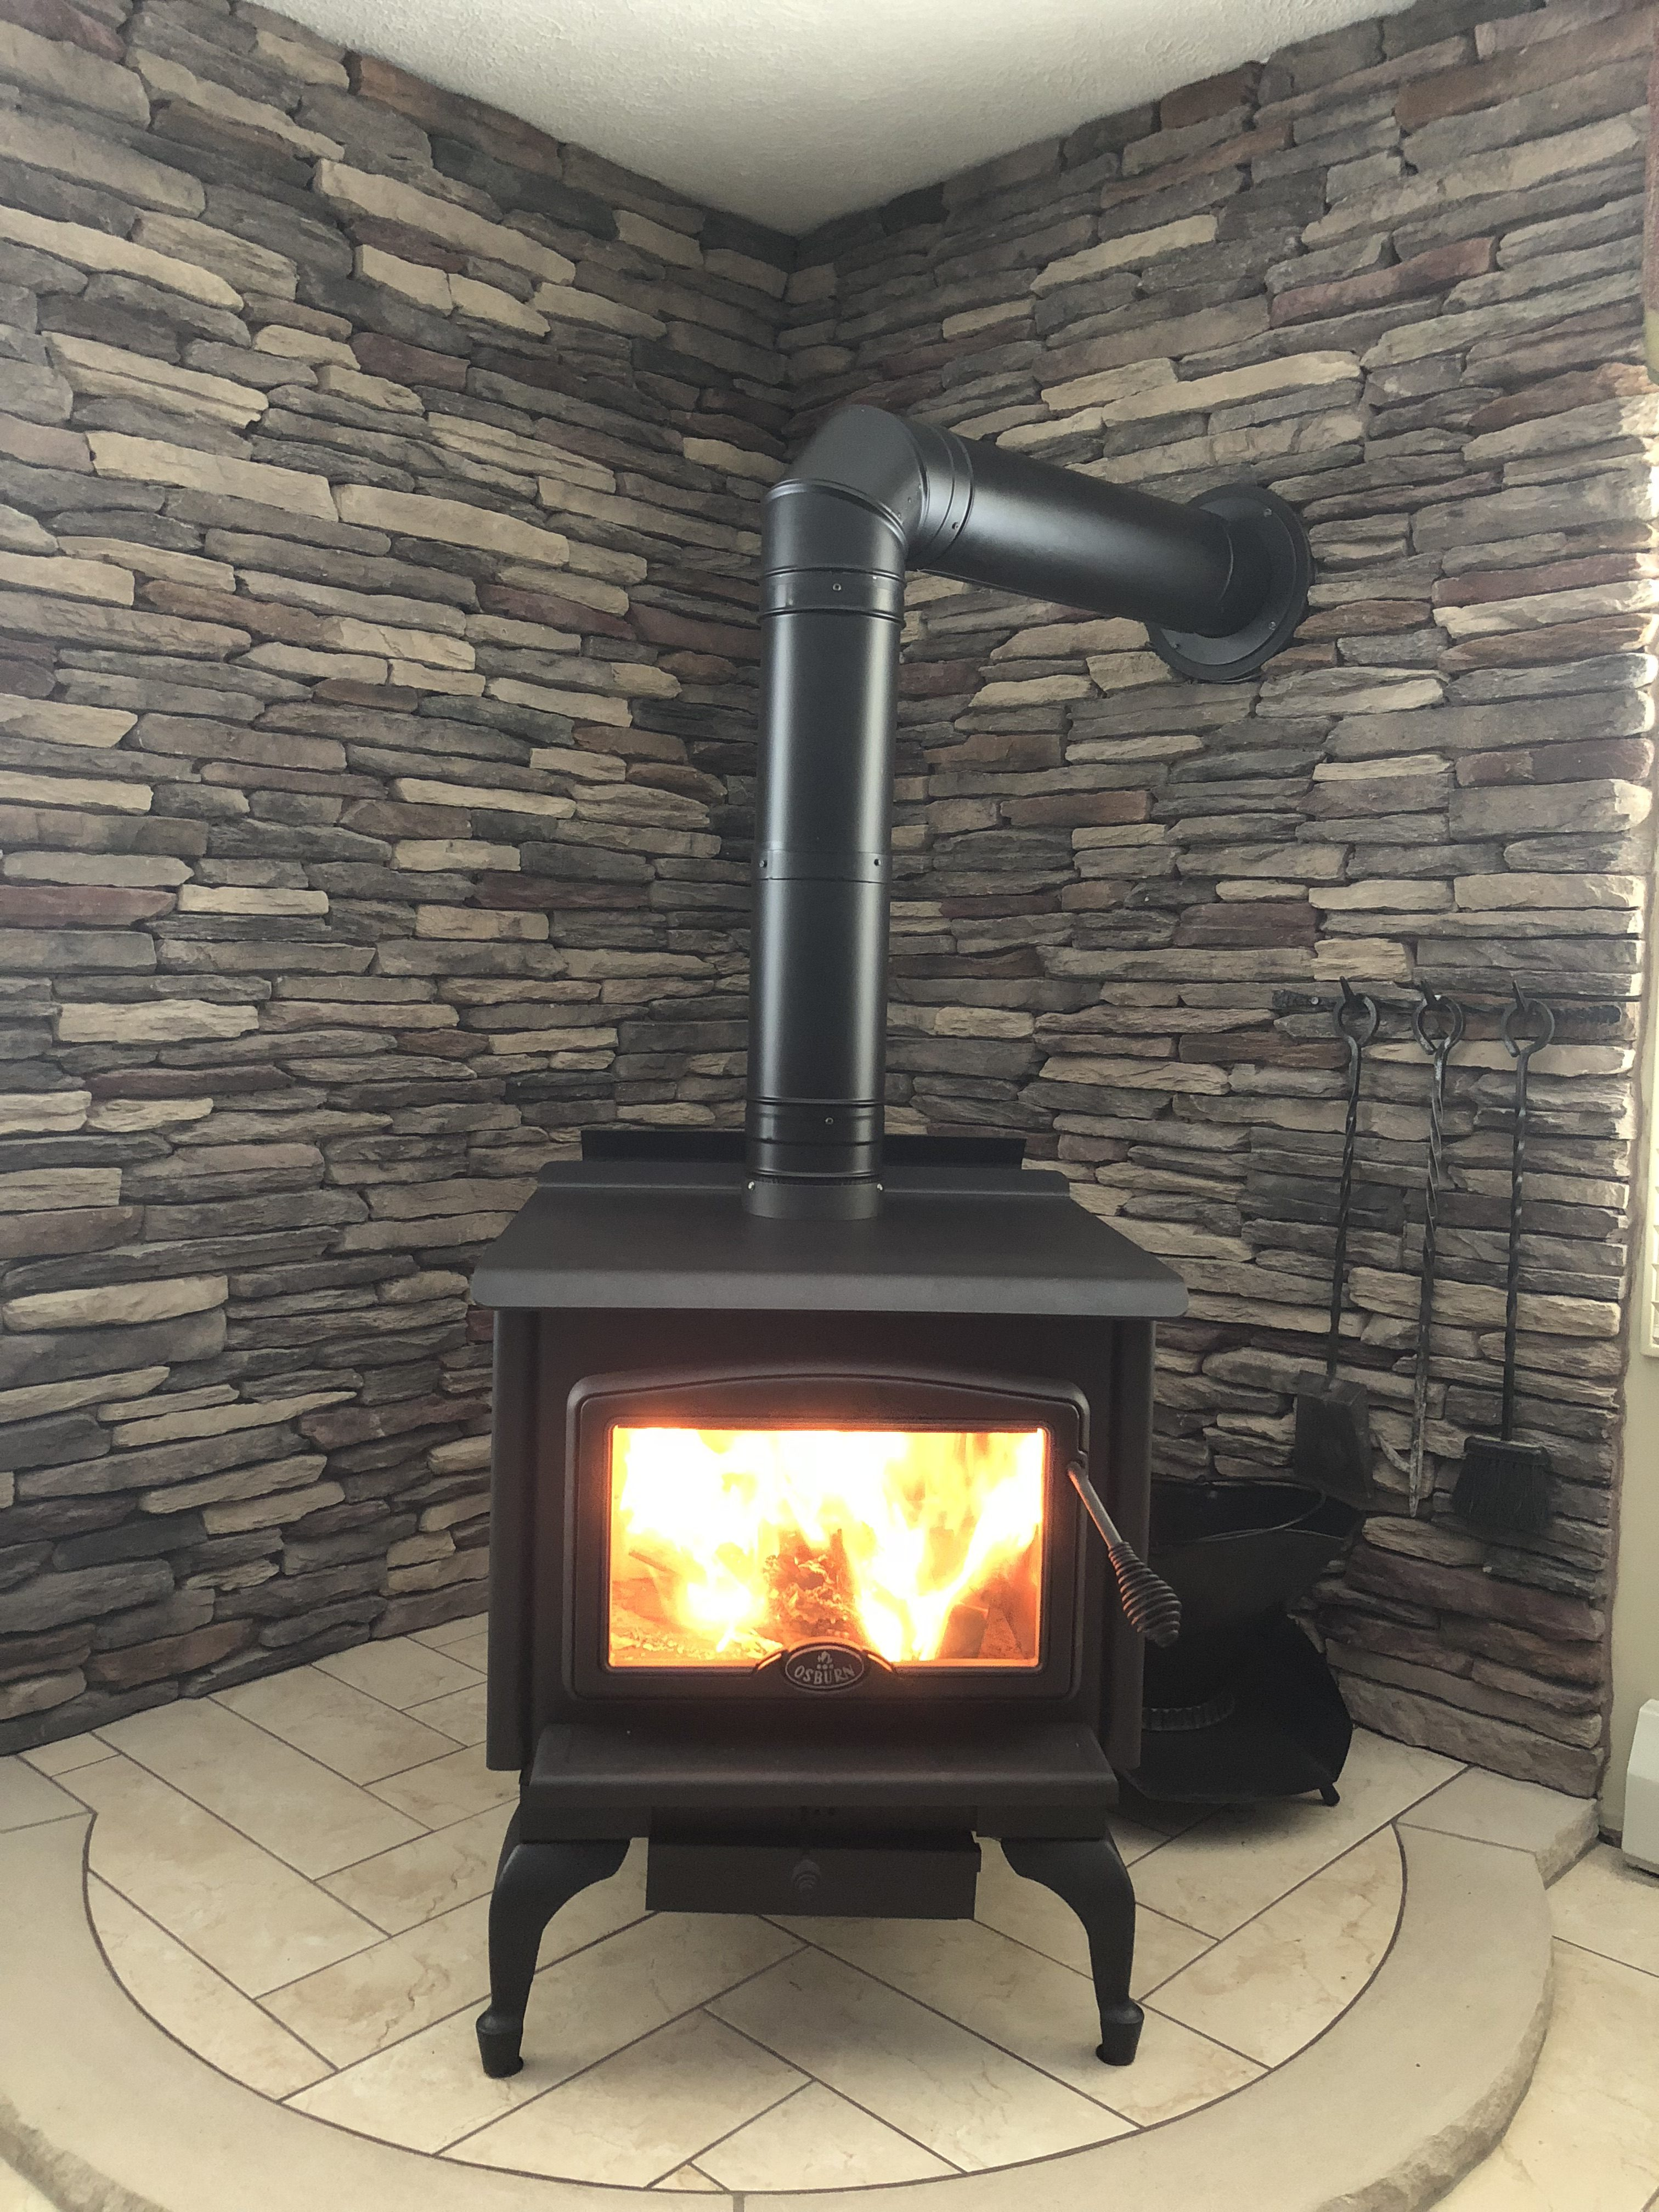 Image of a traditional 1600 Wood Stove by Osburn featuring stone hearth.